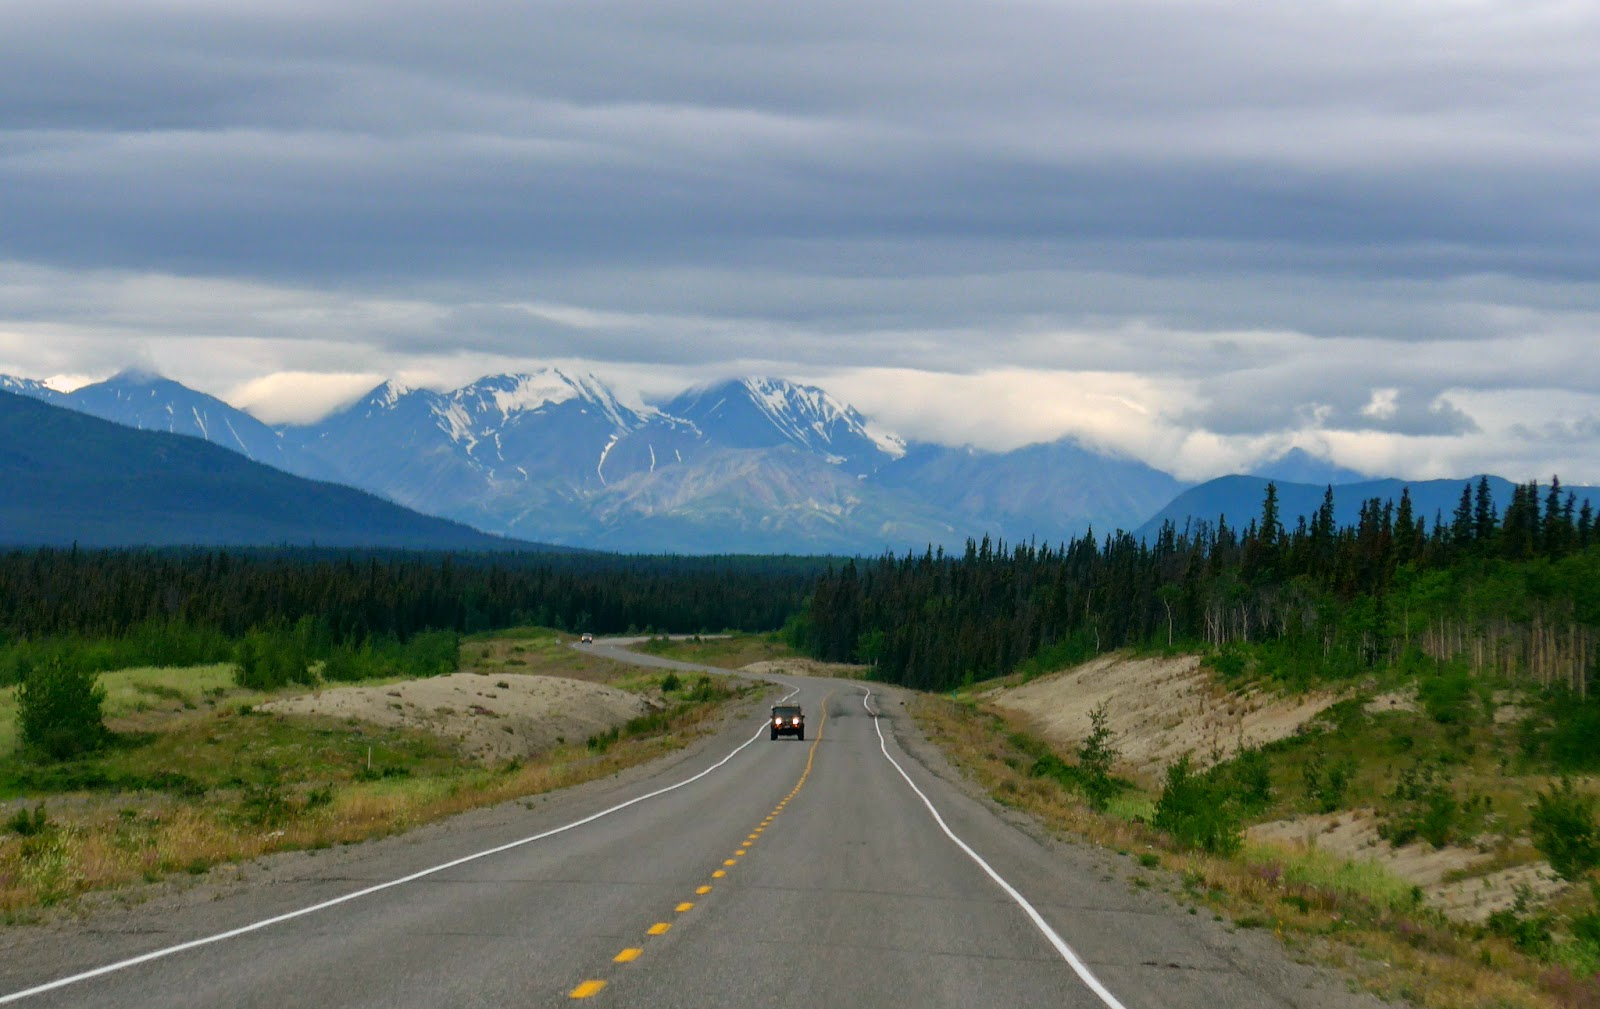 Westbound Alaska Highway. West of Whitehorse, Yukon.